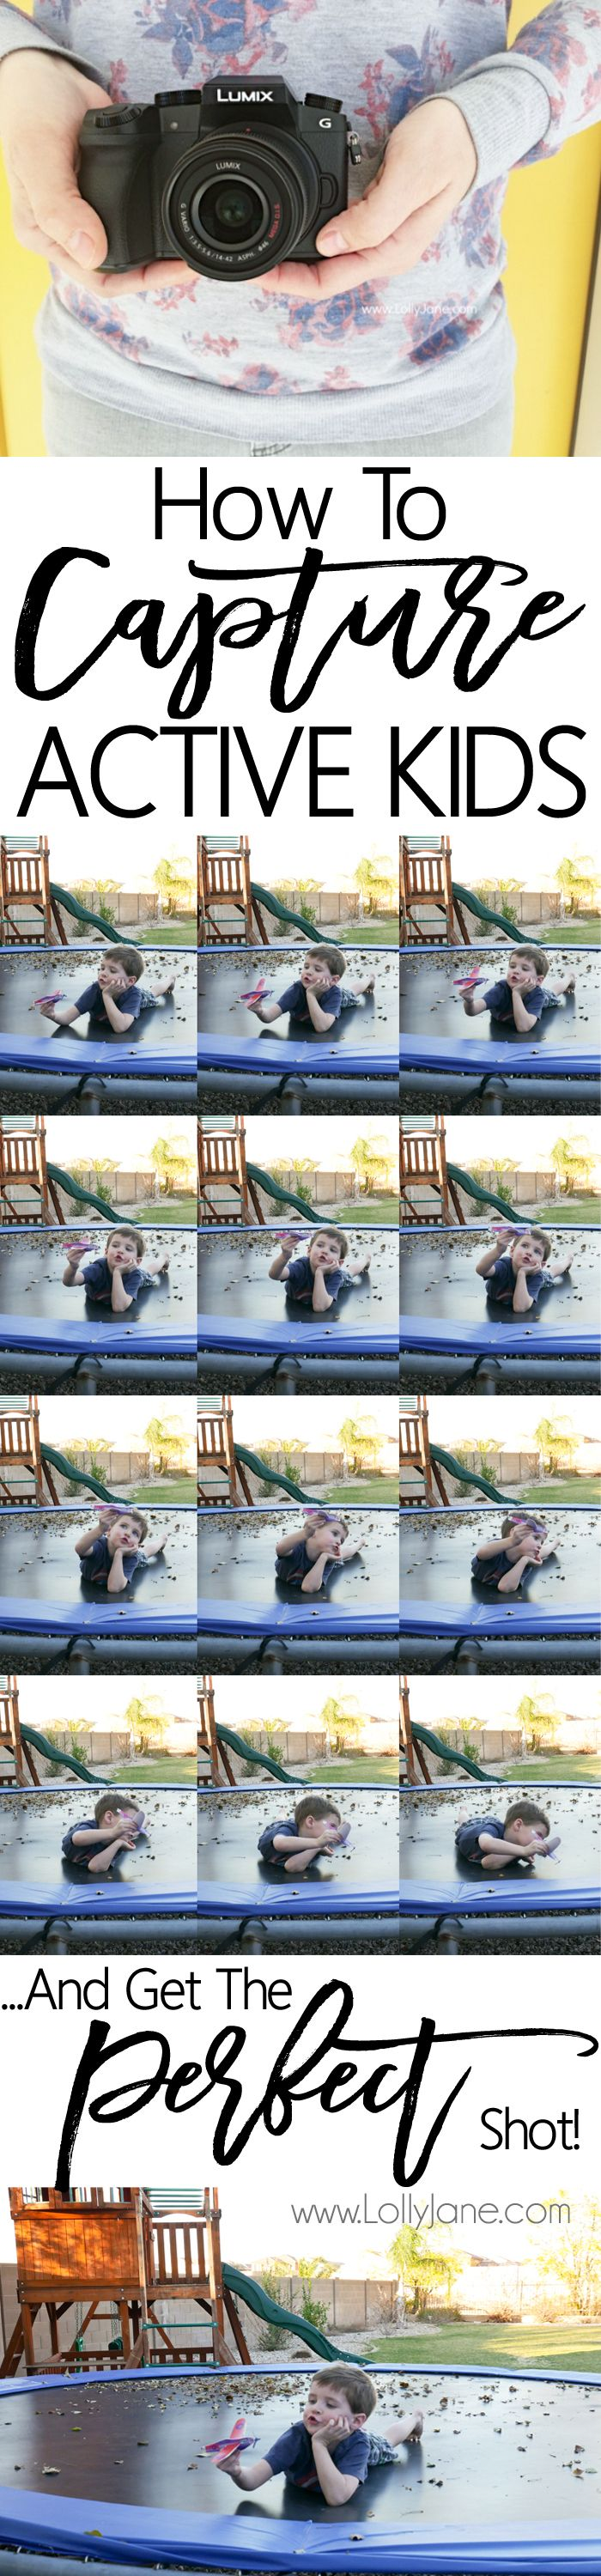 Photography tips: How to capture active kids